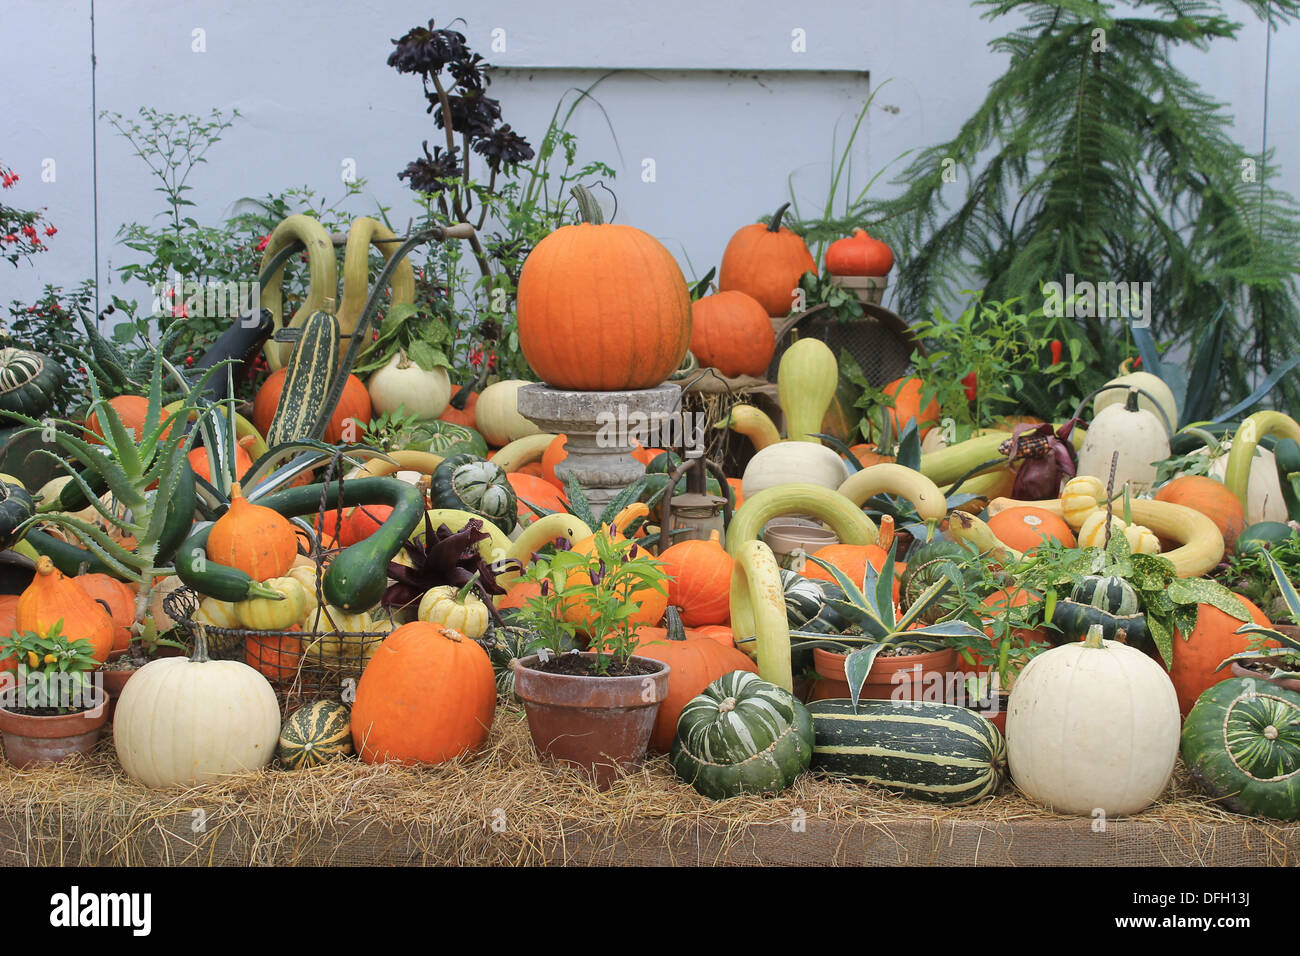 Display of harvest festival produce - pumpkins, marrows and squashes at Wimpole Hall, Cambridgeshire, UK - Stock Image